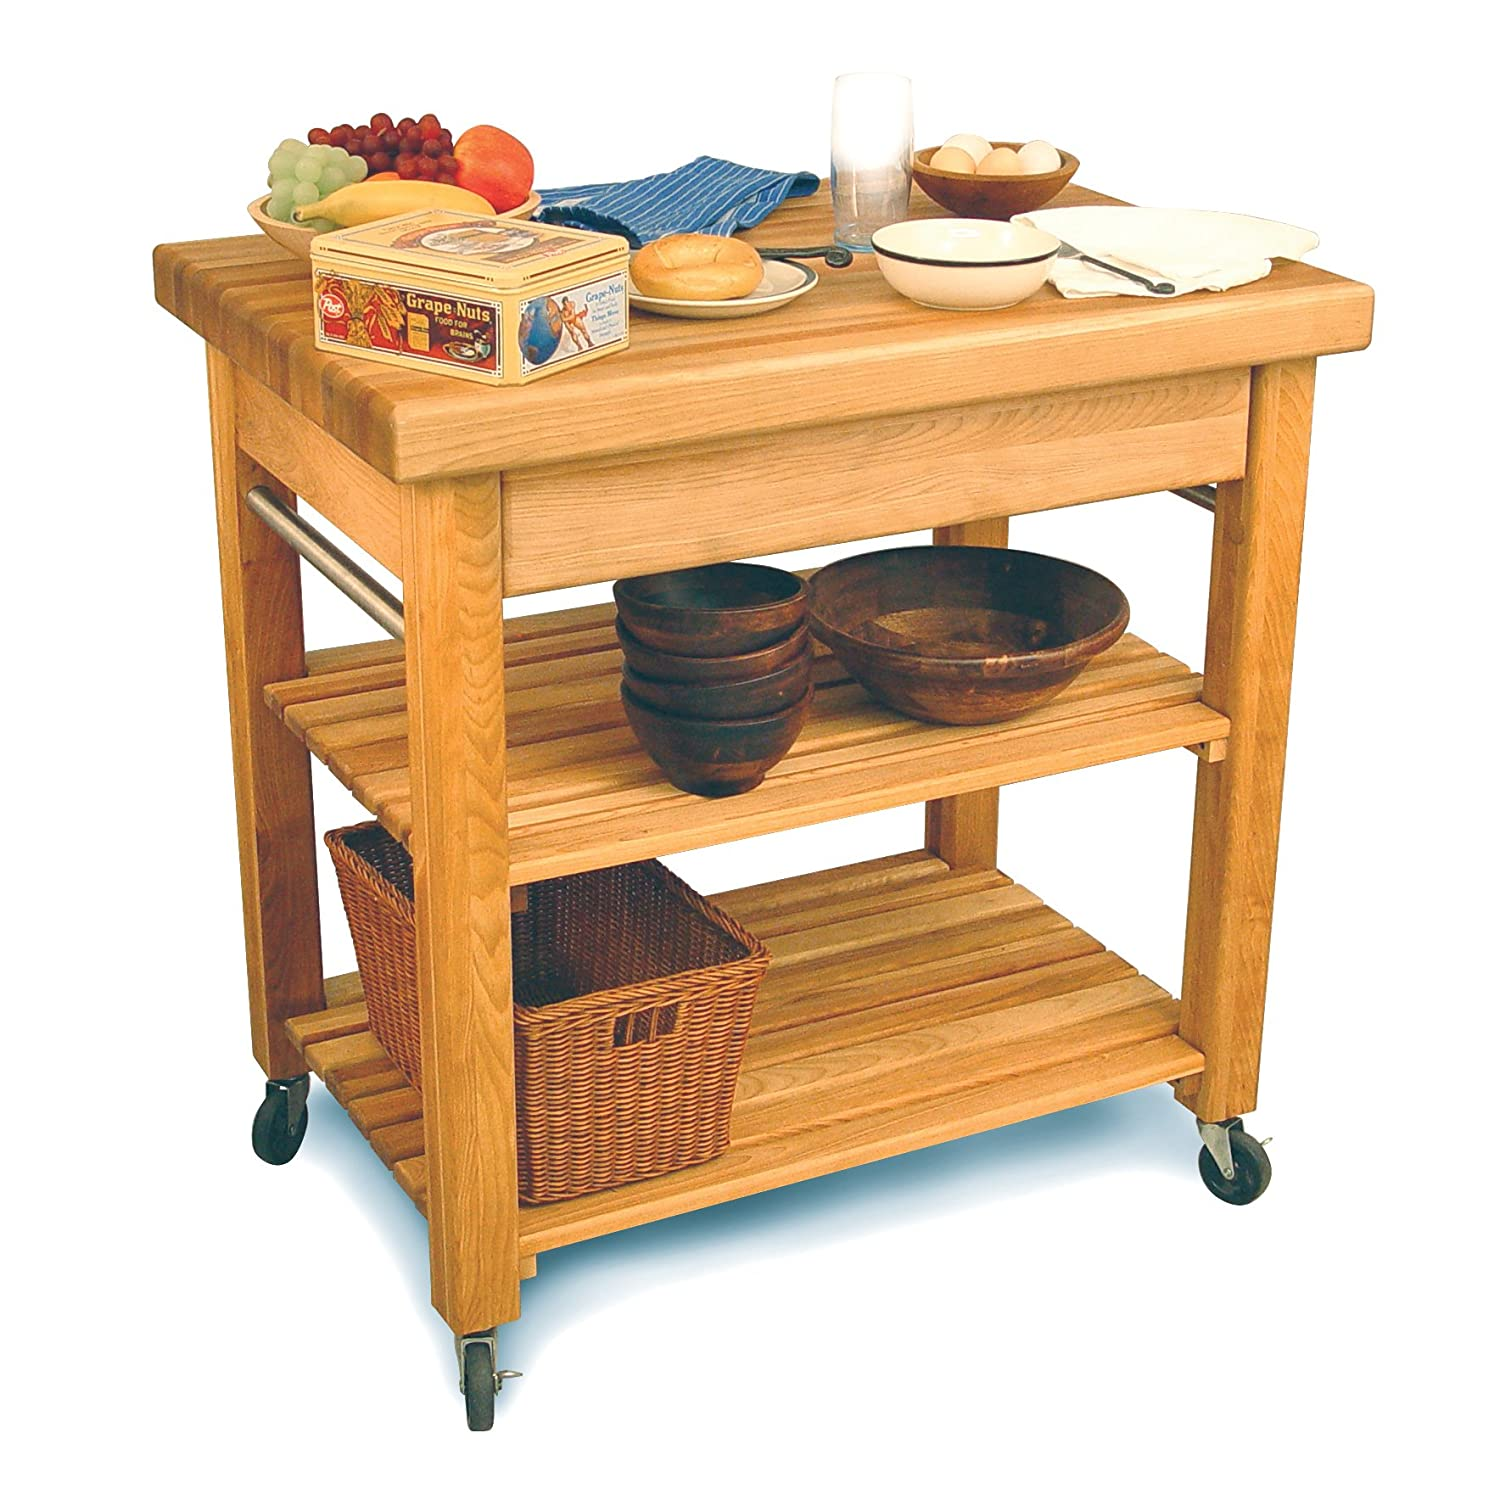 Amazon.com: Catskill Craftsmen French Country Workcenter: Kitchen U0026 Dining